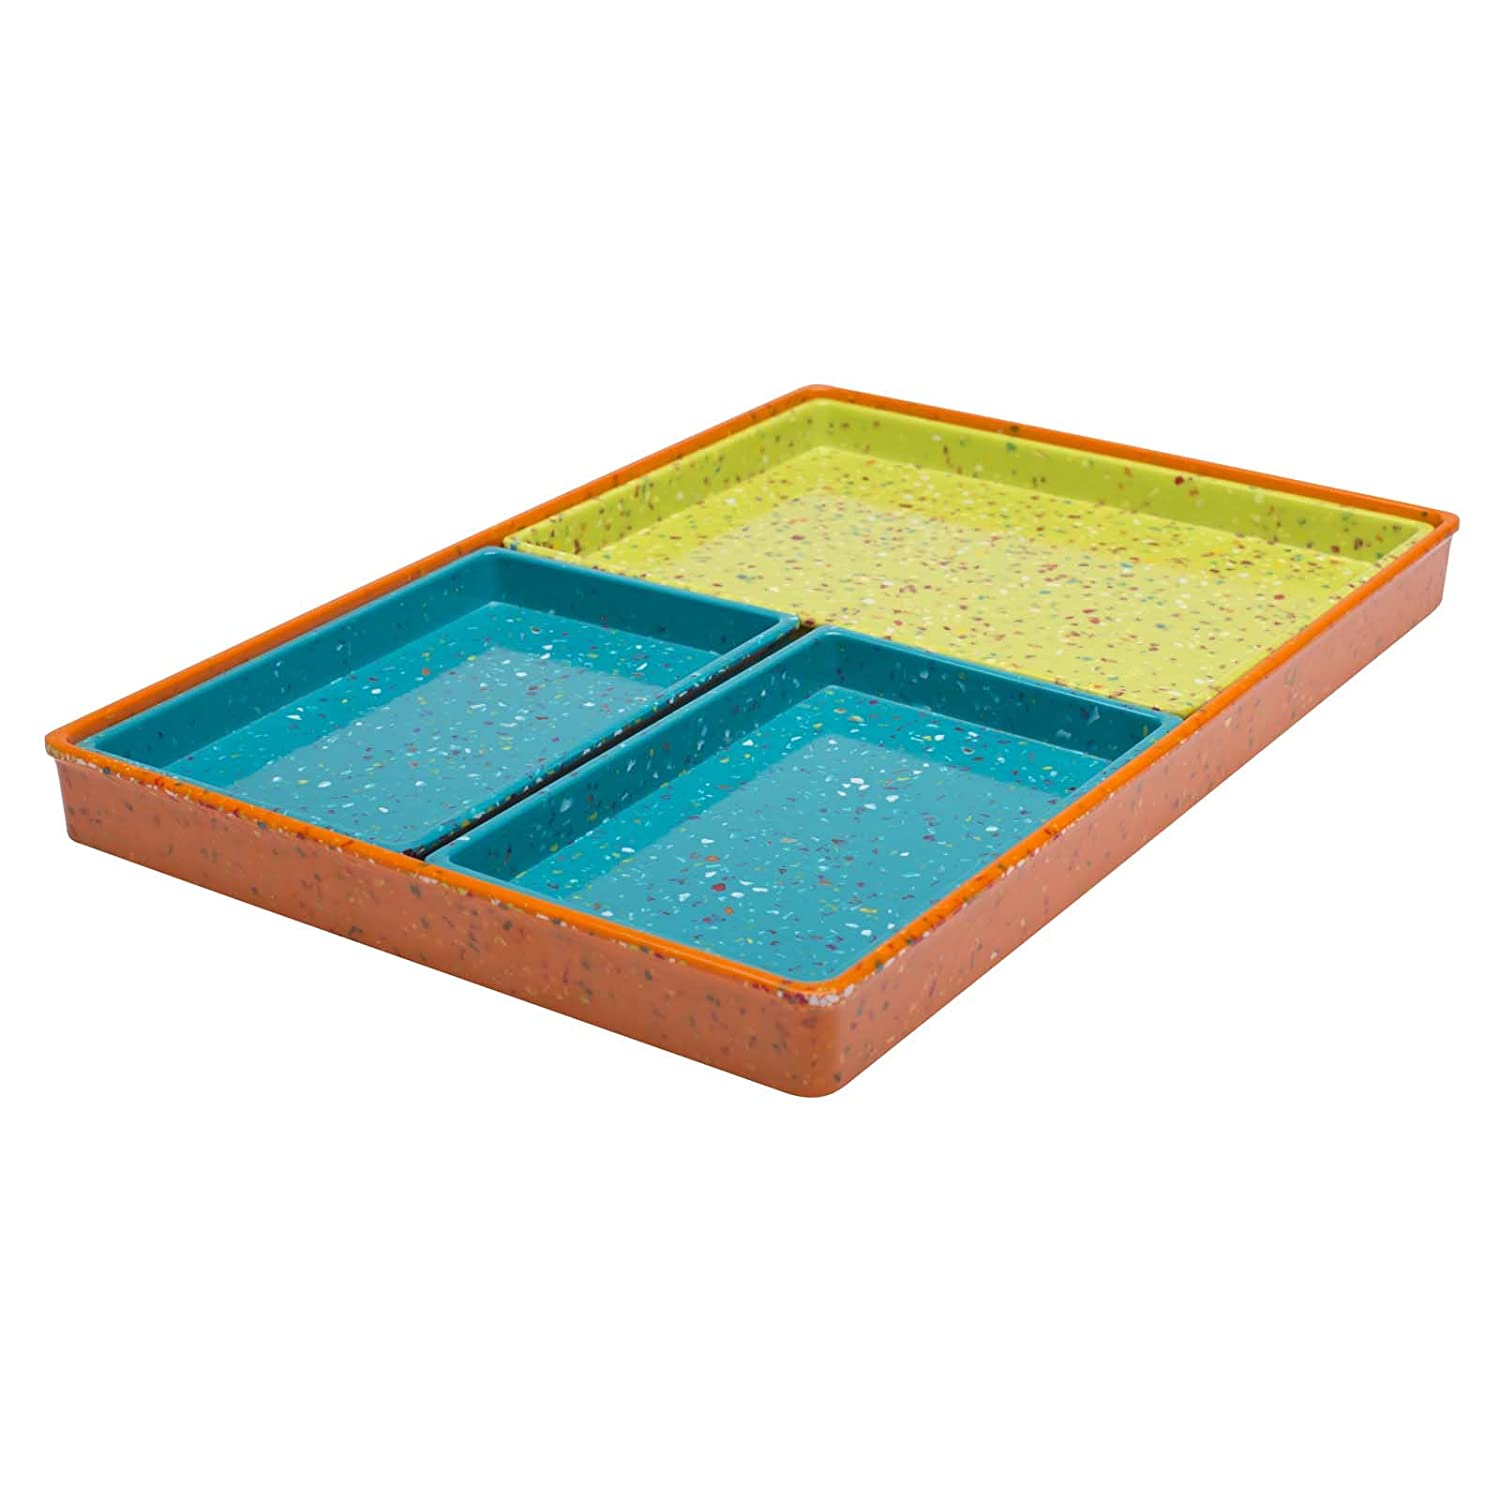 超人気 Zak! Designs Confetti Modular Serving Modular Tray Set Designs (4 by Piece Set), Durable and BPA-free Melamine, Assorted Orange by Zak Designs Assorted Orange B00KDGUPRO, 松川村:3a8e7eed --- a0267596.xsph.ru